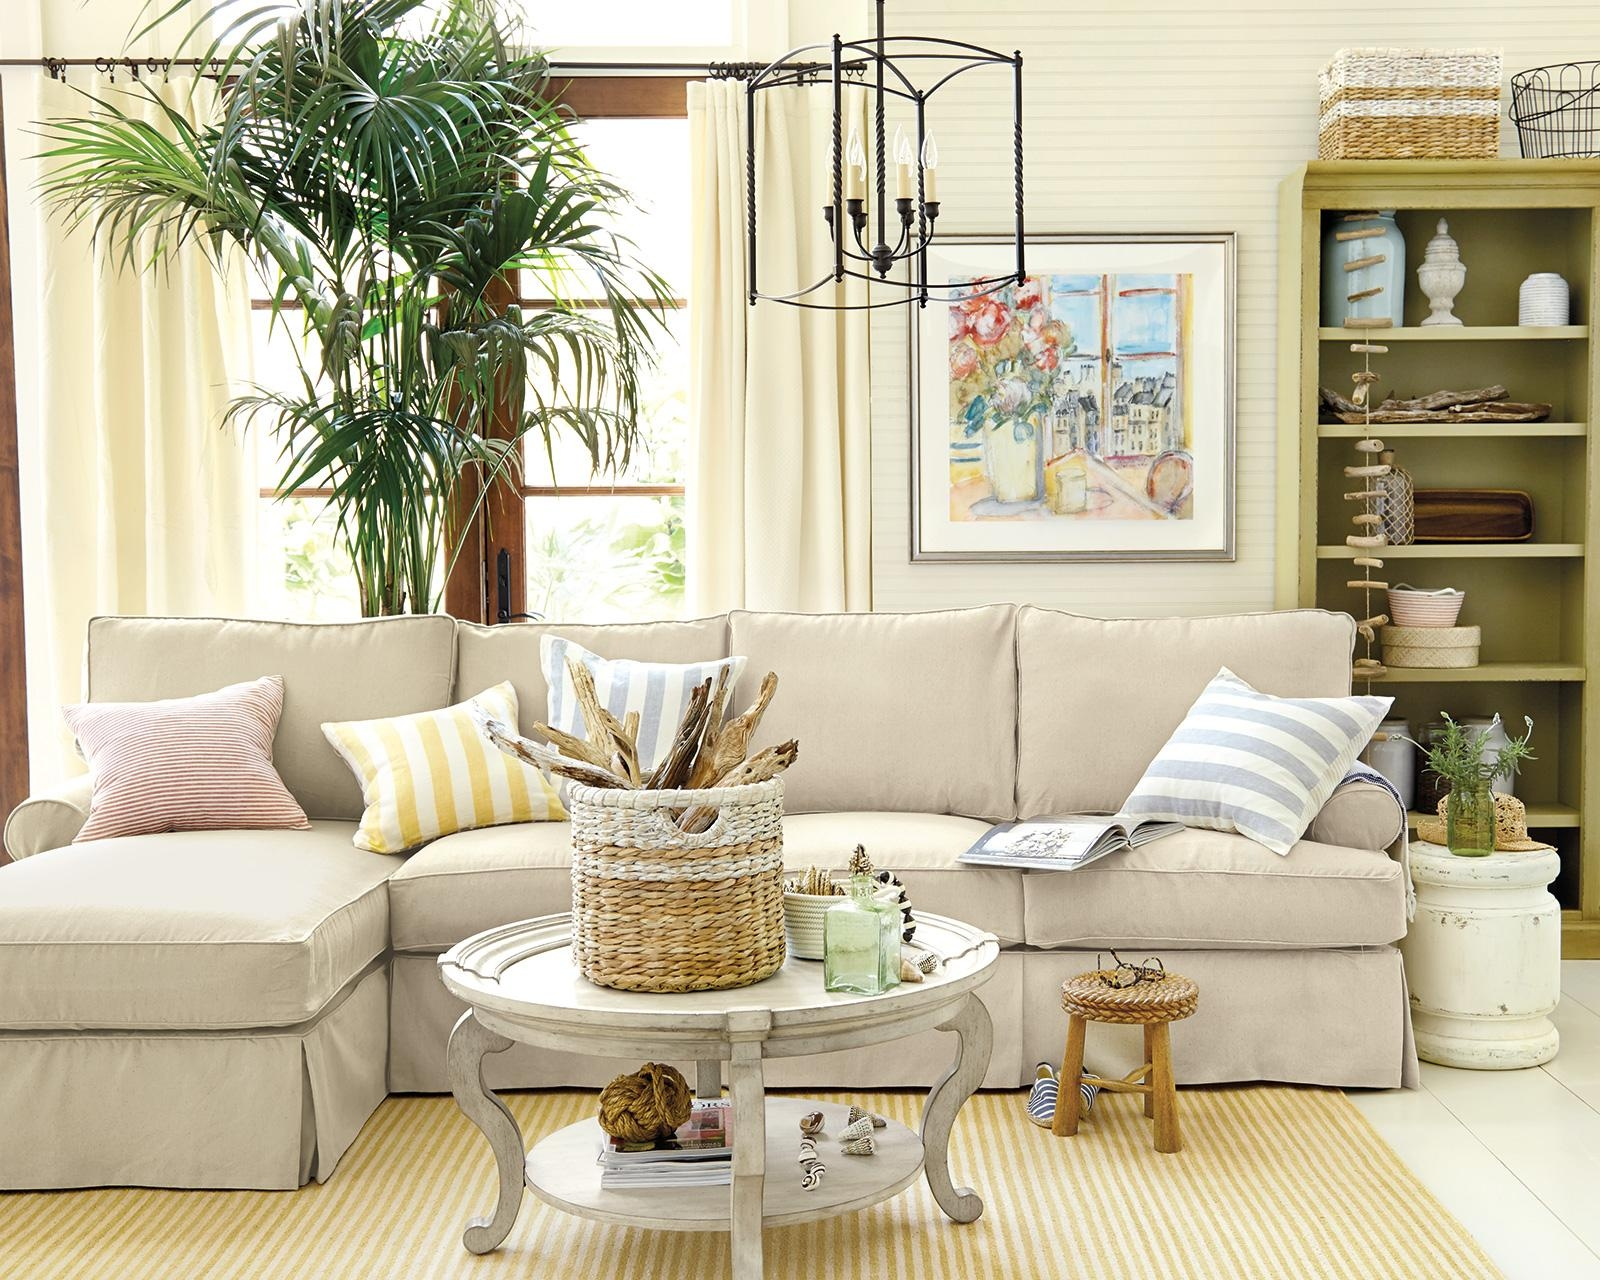 How To Match A Coffee Table To Your Sectional – How To Decorate In Coffee Table For Sectional Sofa (View 3 of 15)